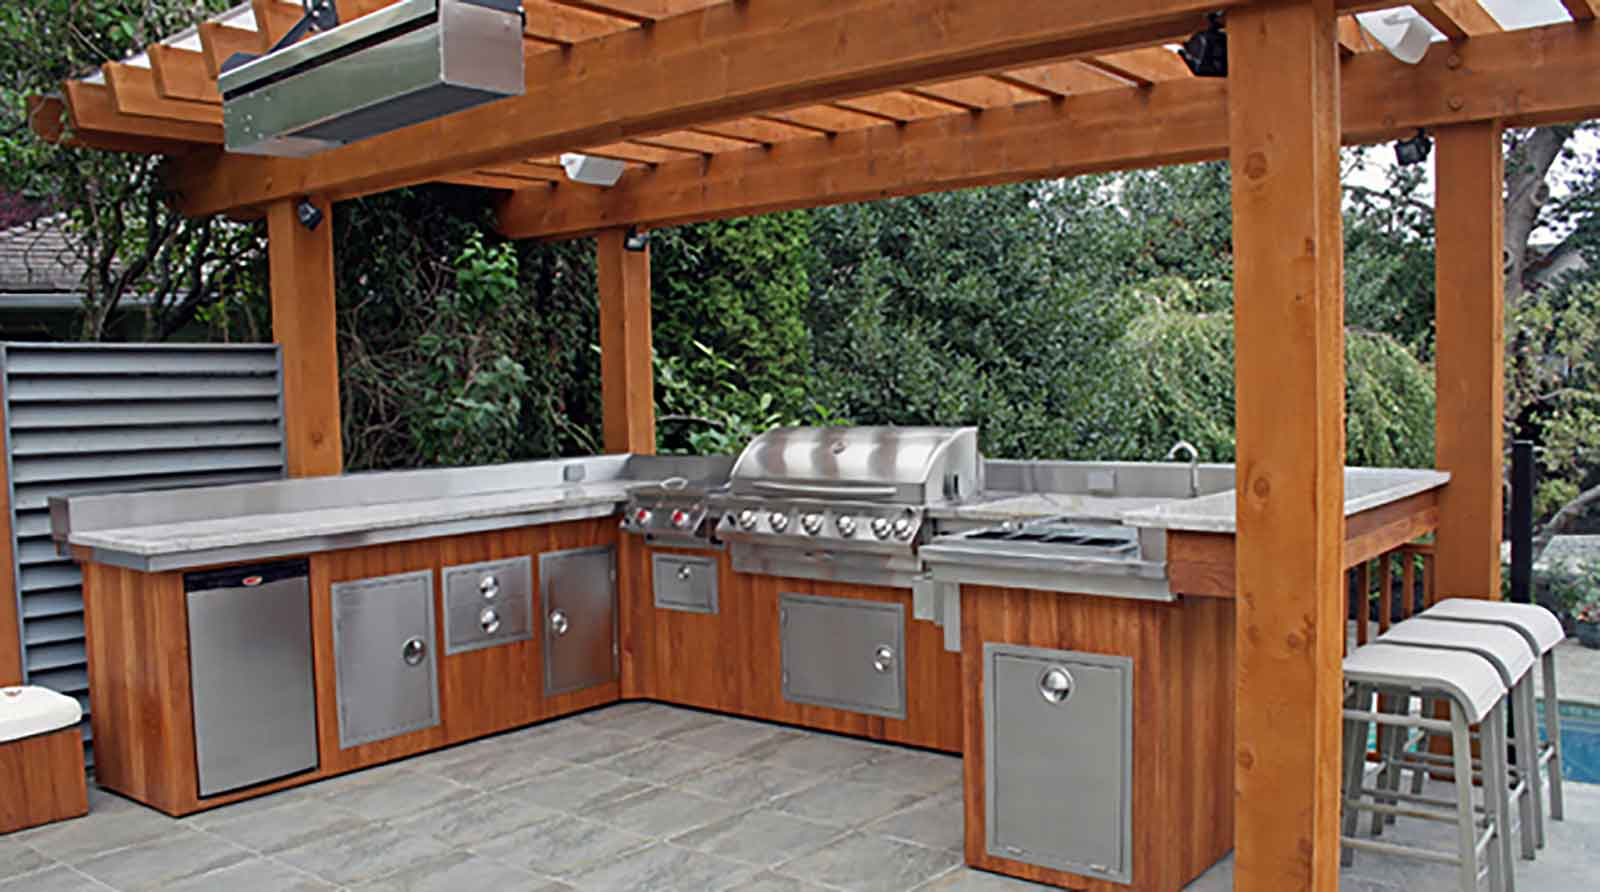 Custom designed outdoor kitchens azuro concepts for Backyard barbecues outdoor kitchen